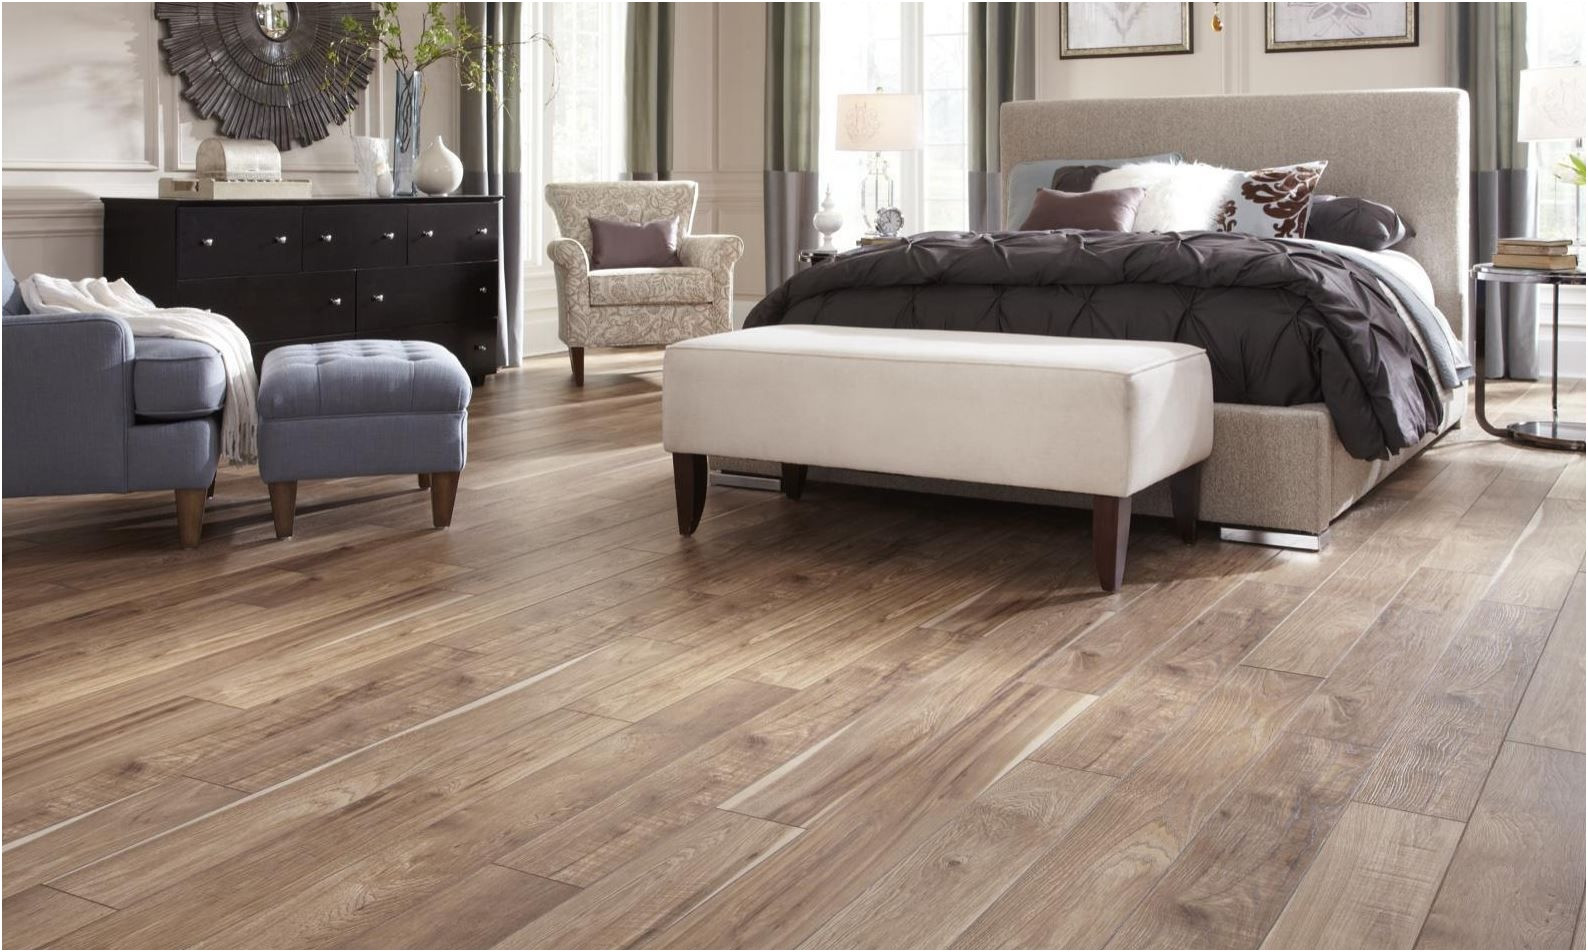 how to clean hand scraped hardwood floors of best hand scraped hardwood flooring reviews galerie luxury vinyl with best hand scraped hardwood flooring reviews galerie luxury vinyl tile and plank flooring panies